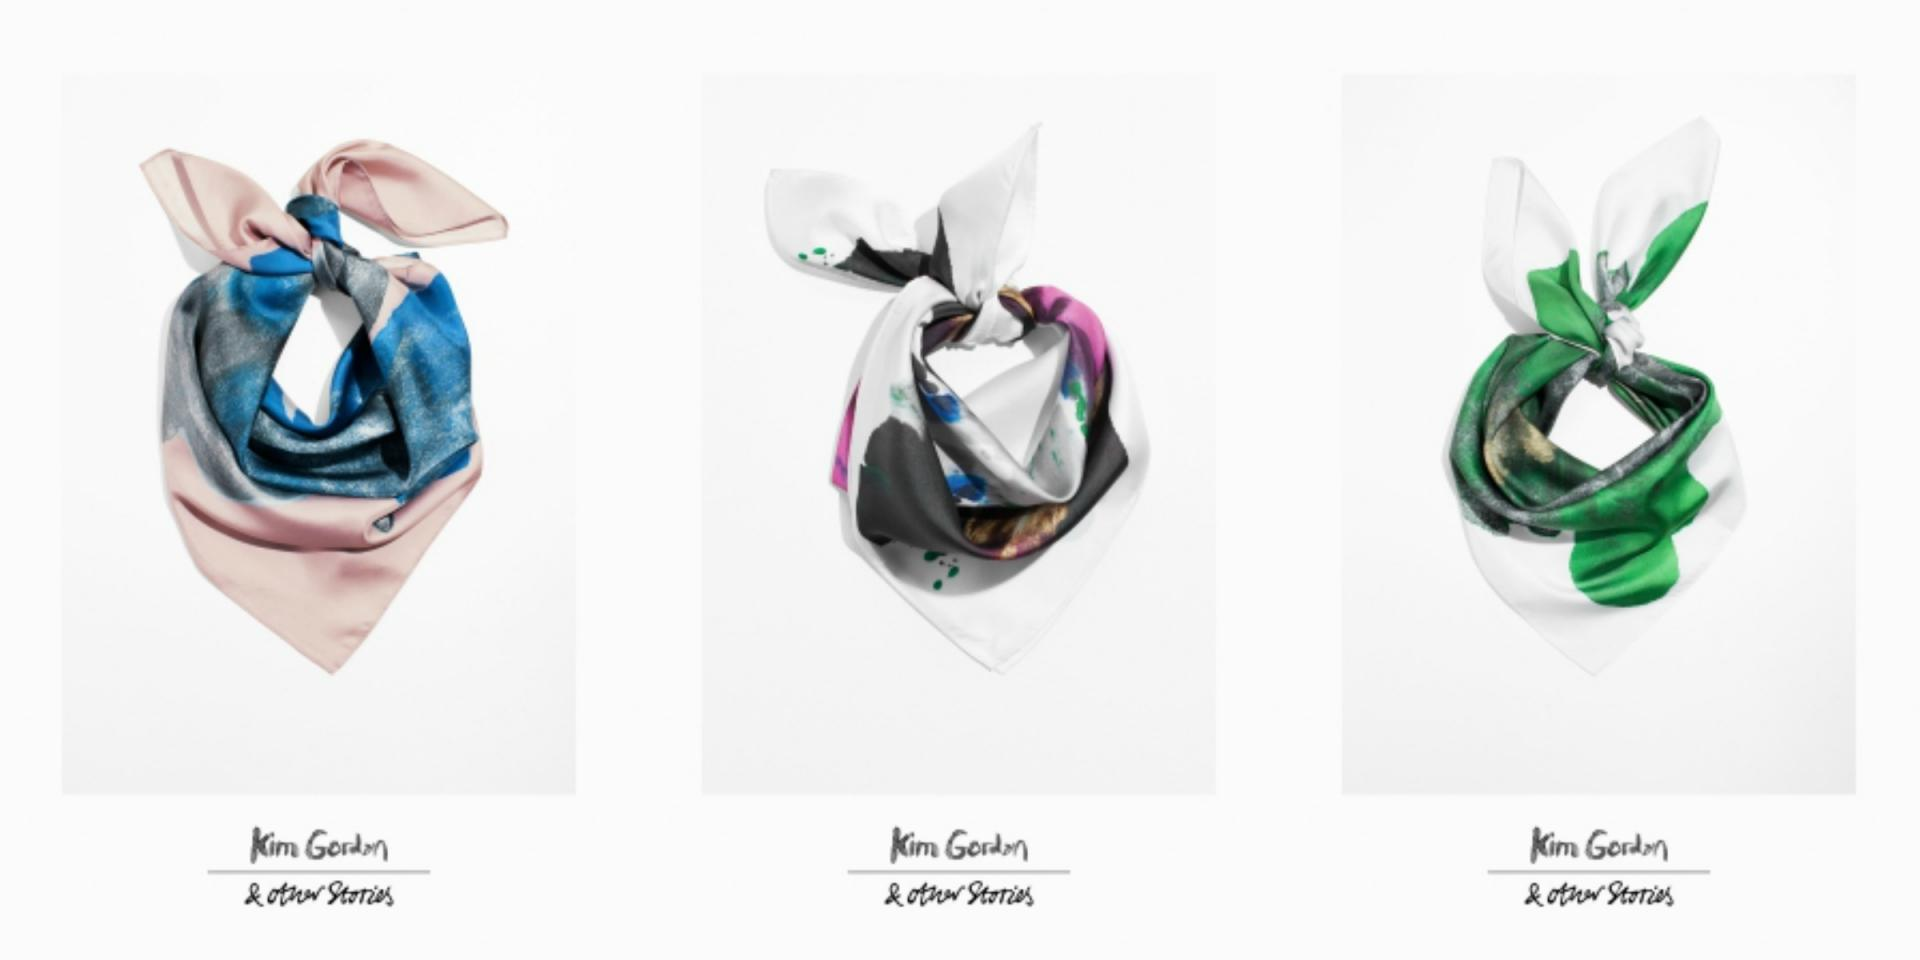 Kim Gordon collaboration with & Other Stories